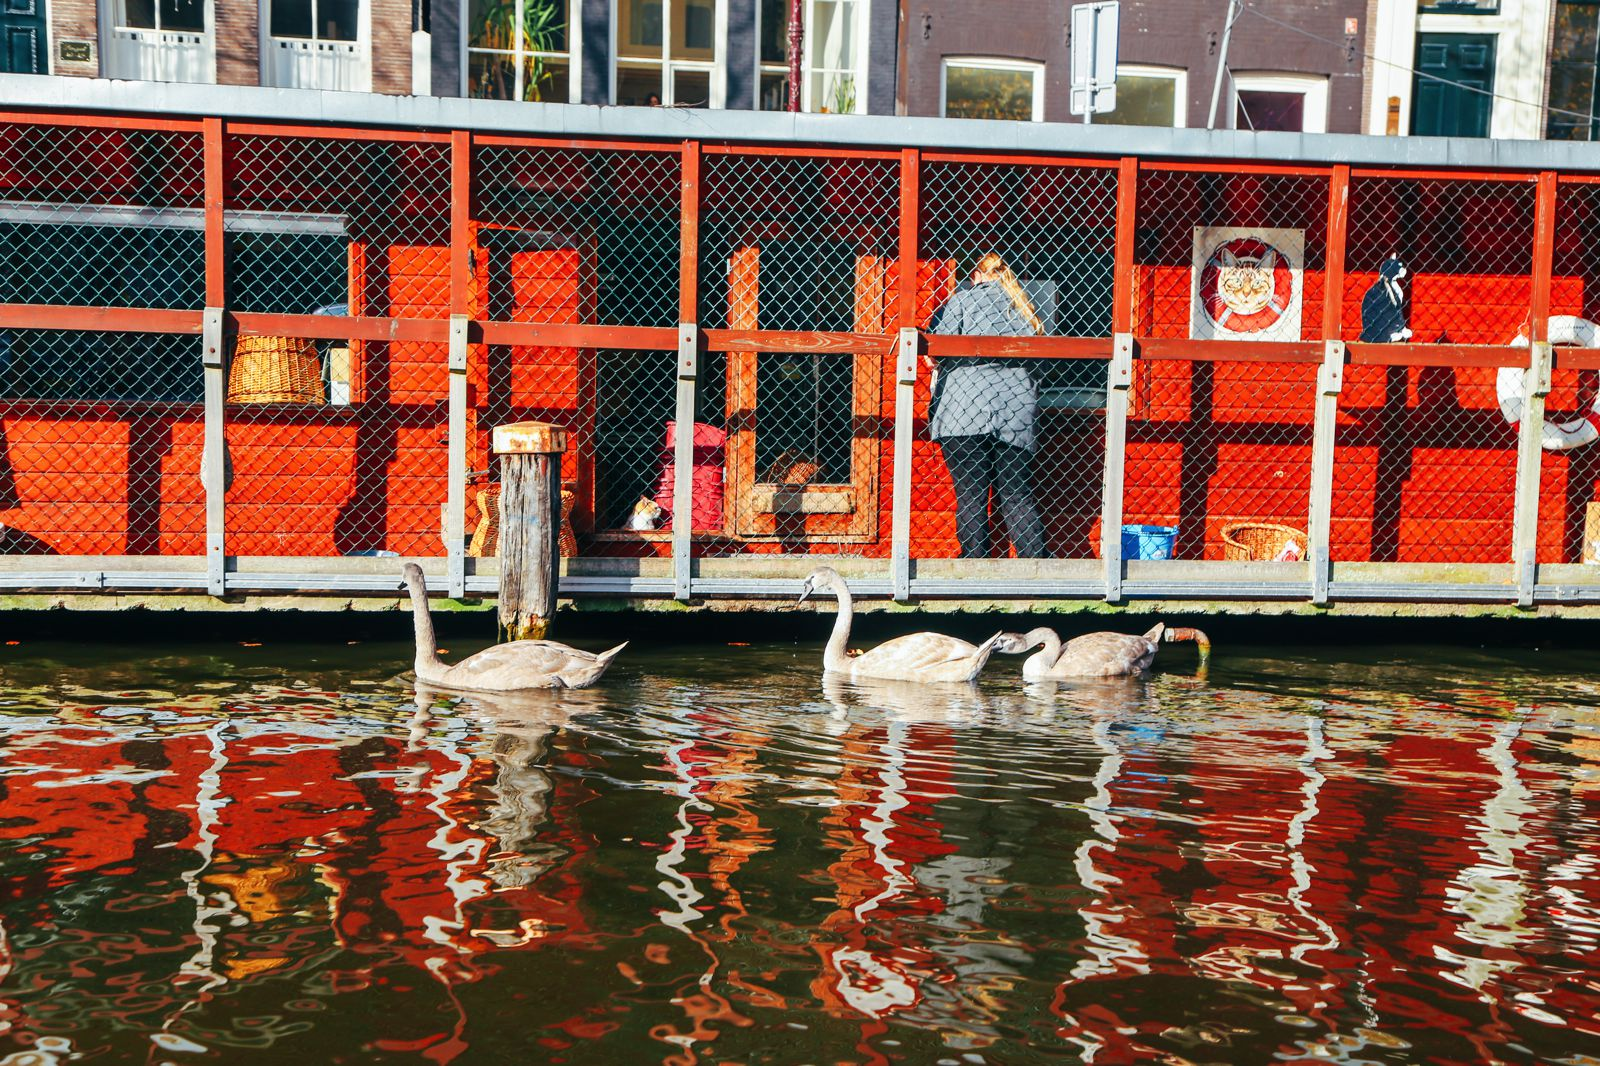 Exploring Amsterdam's Canal (By Driving A Boat For The First Time!) (3)